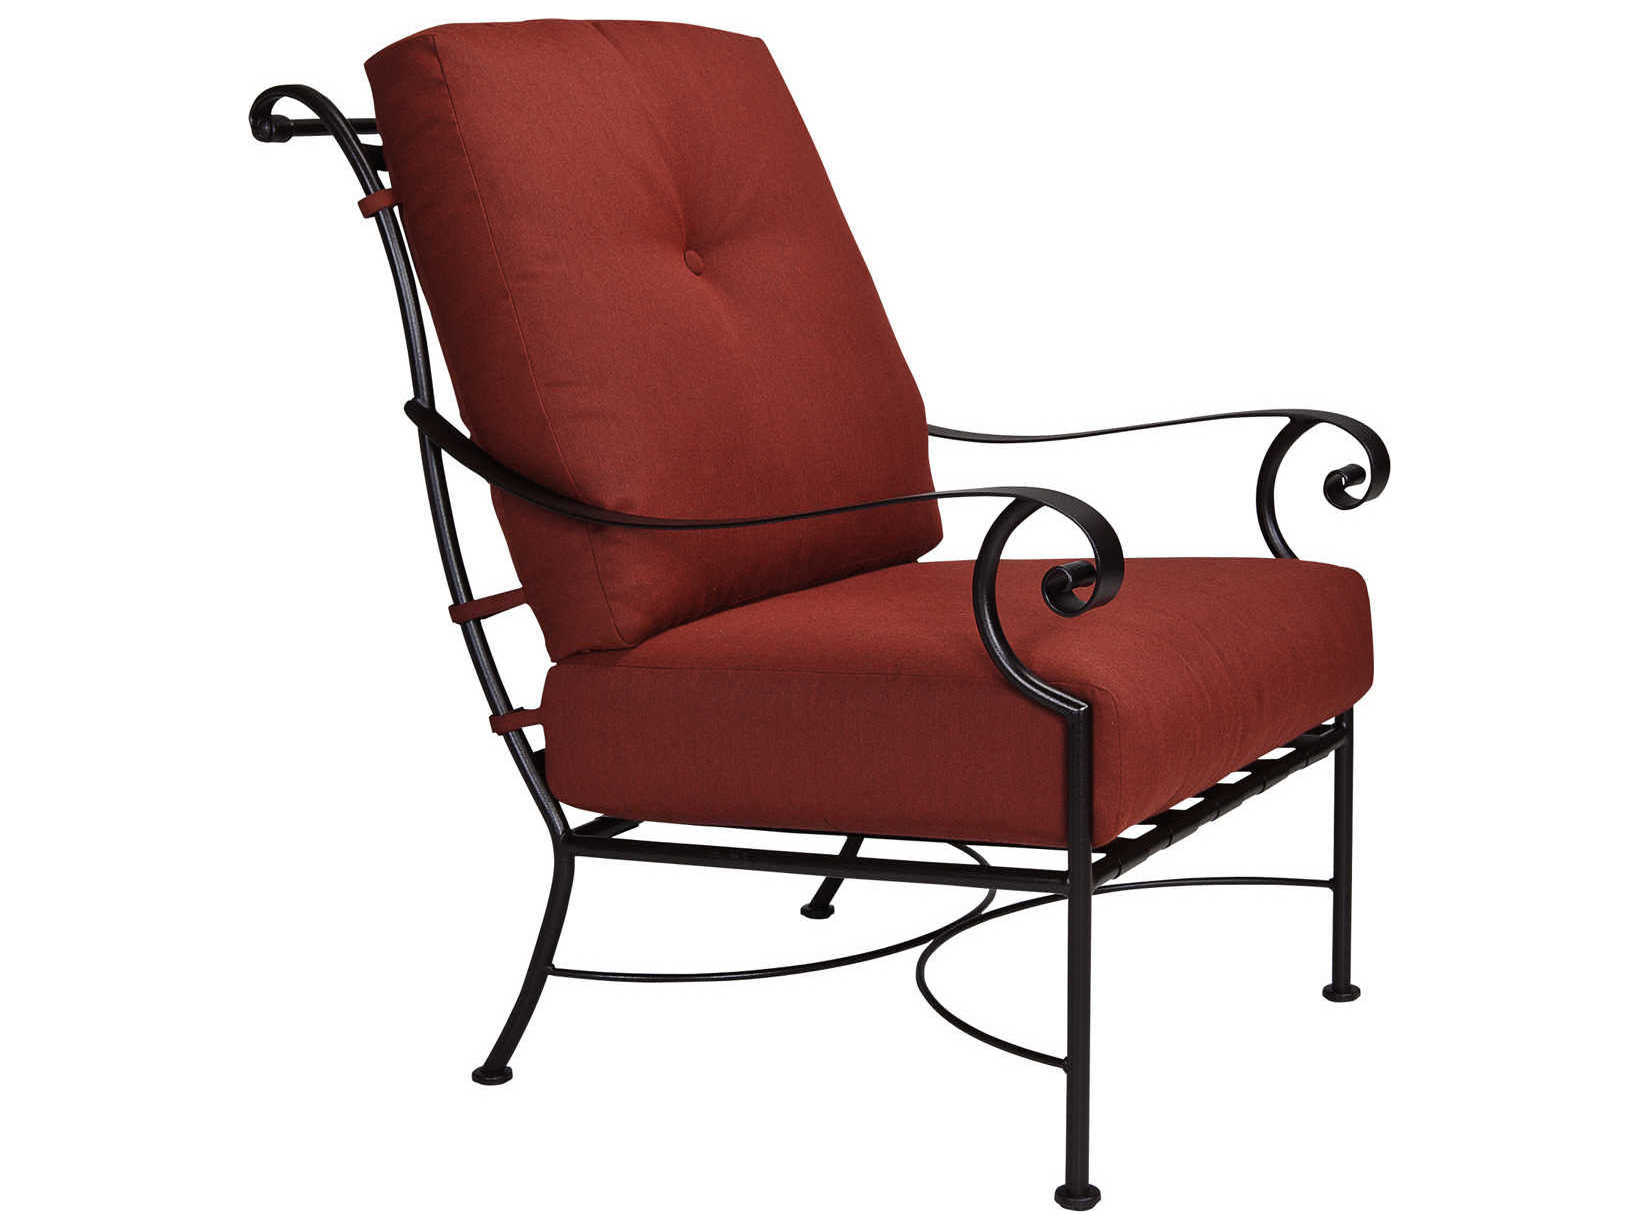 OW Lee St Charles Wrought Iron Lounge Chair